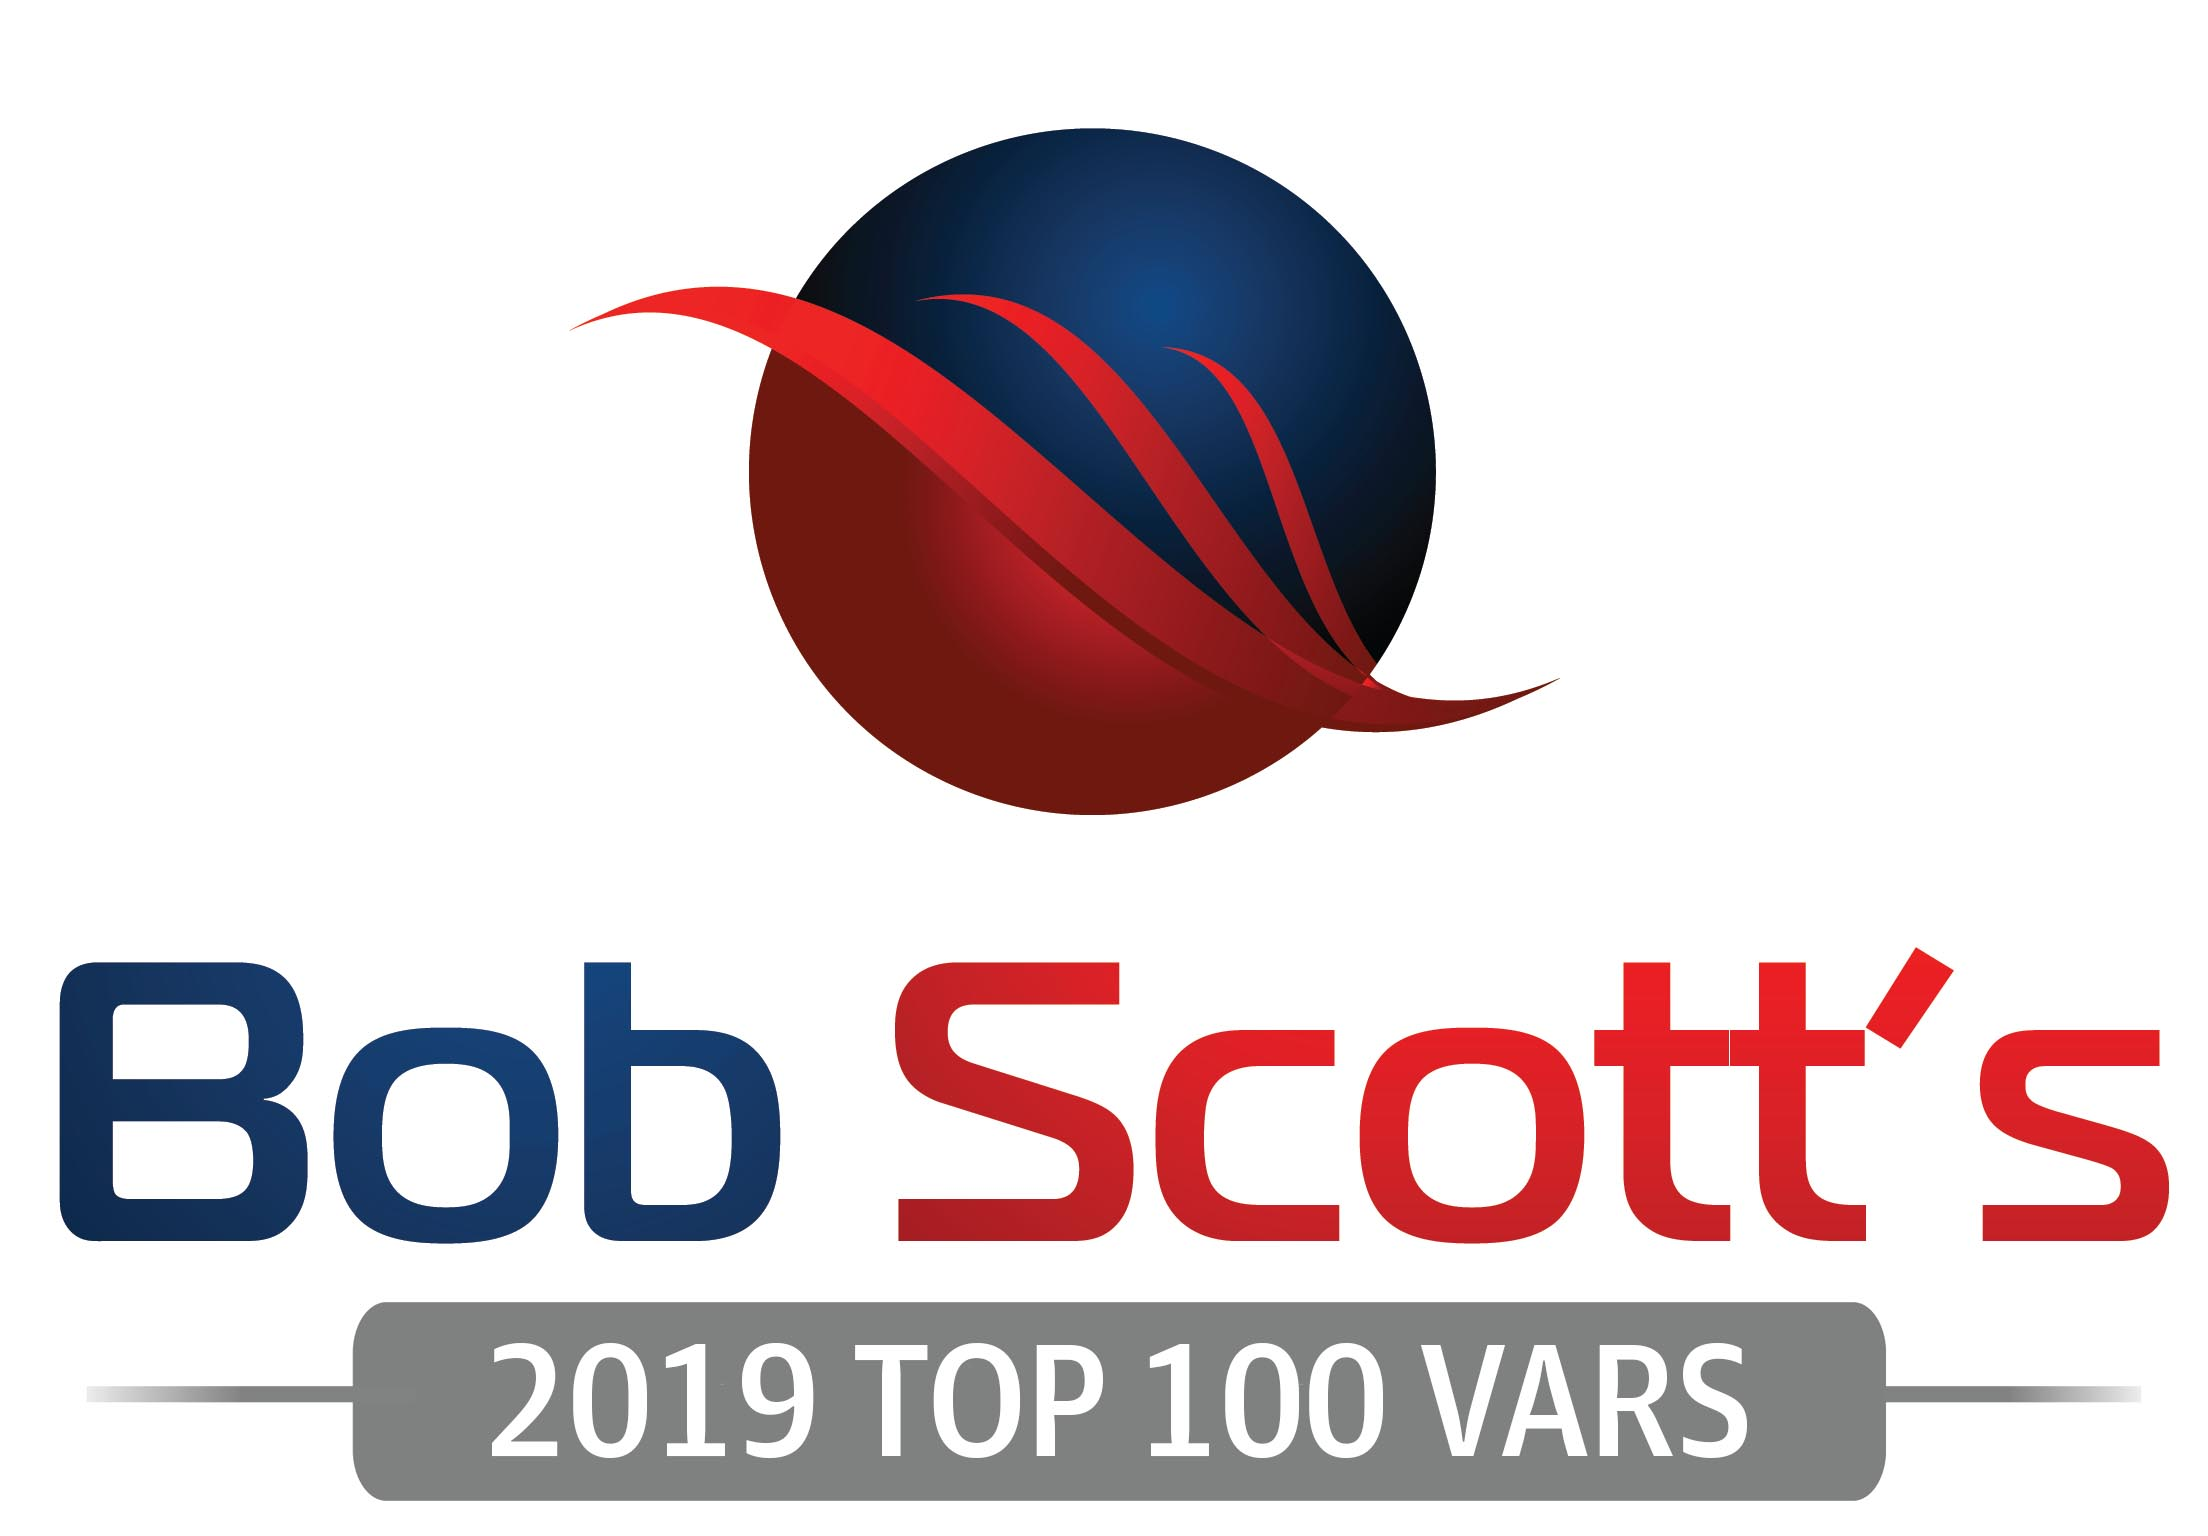 Bob Scott's Top 100 VARs 2019 logo